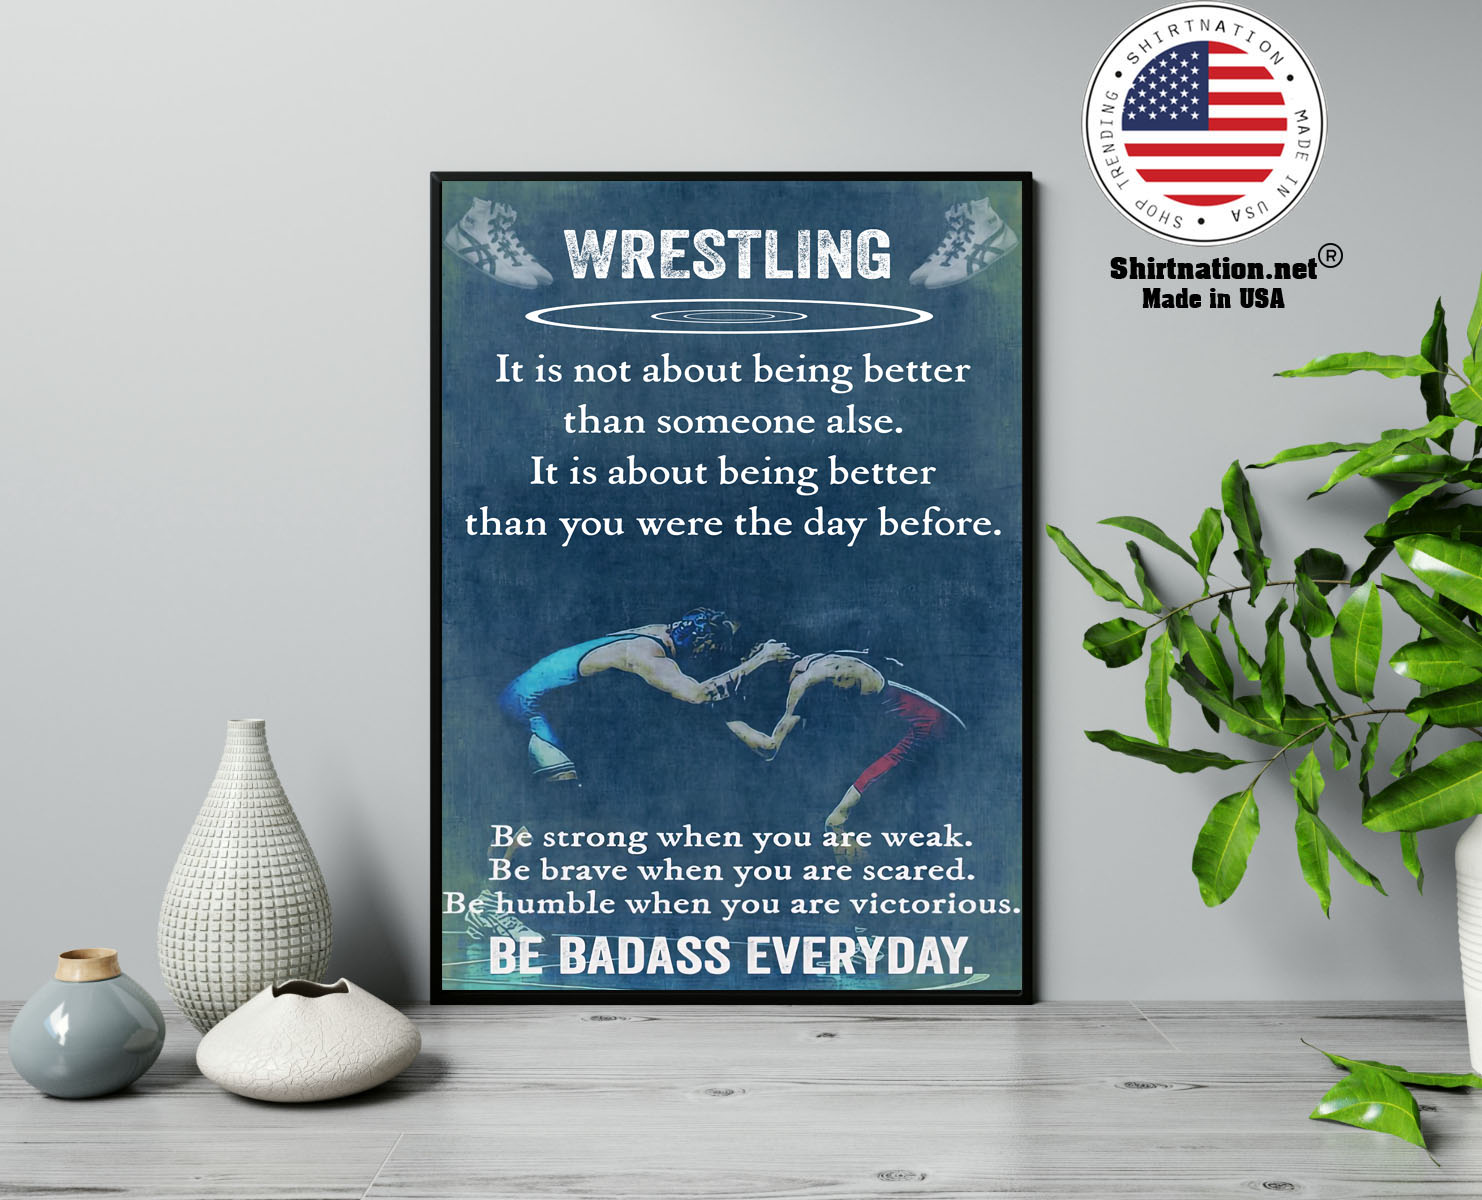 Wrestling it is not about being better than someine else poster 13